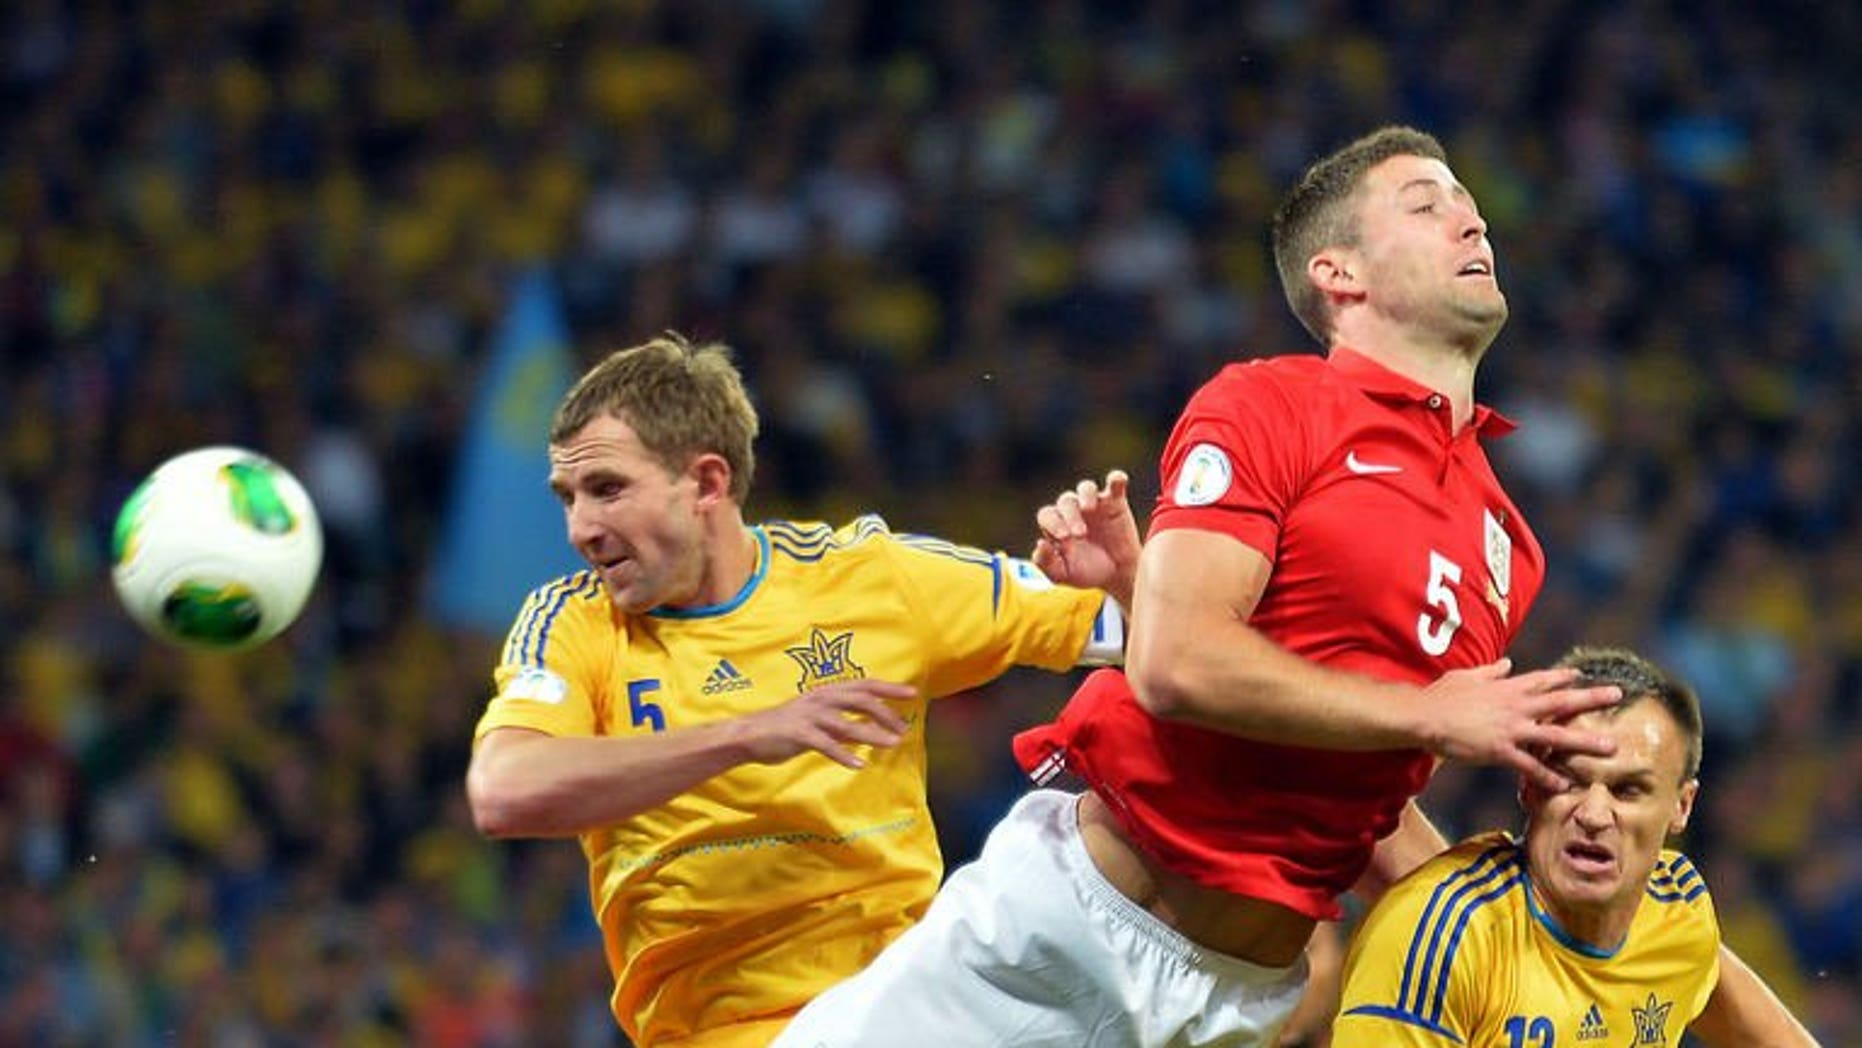 England's defender Gary Cahill (C) challenges Ukraine's defenders Olexandr Kucher (L) and Vyacheslav Shevchuk (R) during the 2014 FIFA World Cup European zone group H football match in Kiev on September 10, 2013. The match ended 0-0.